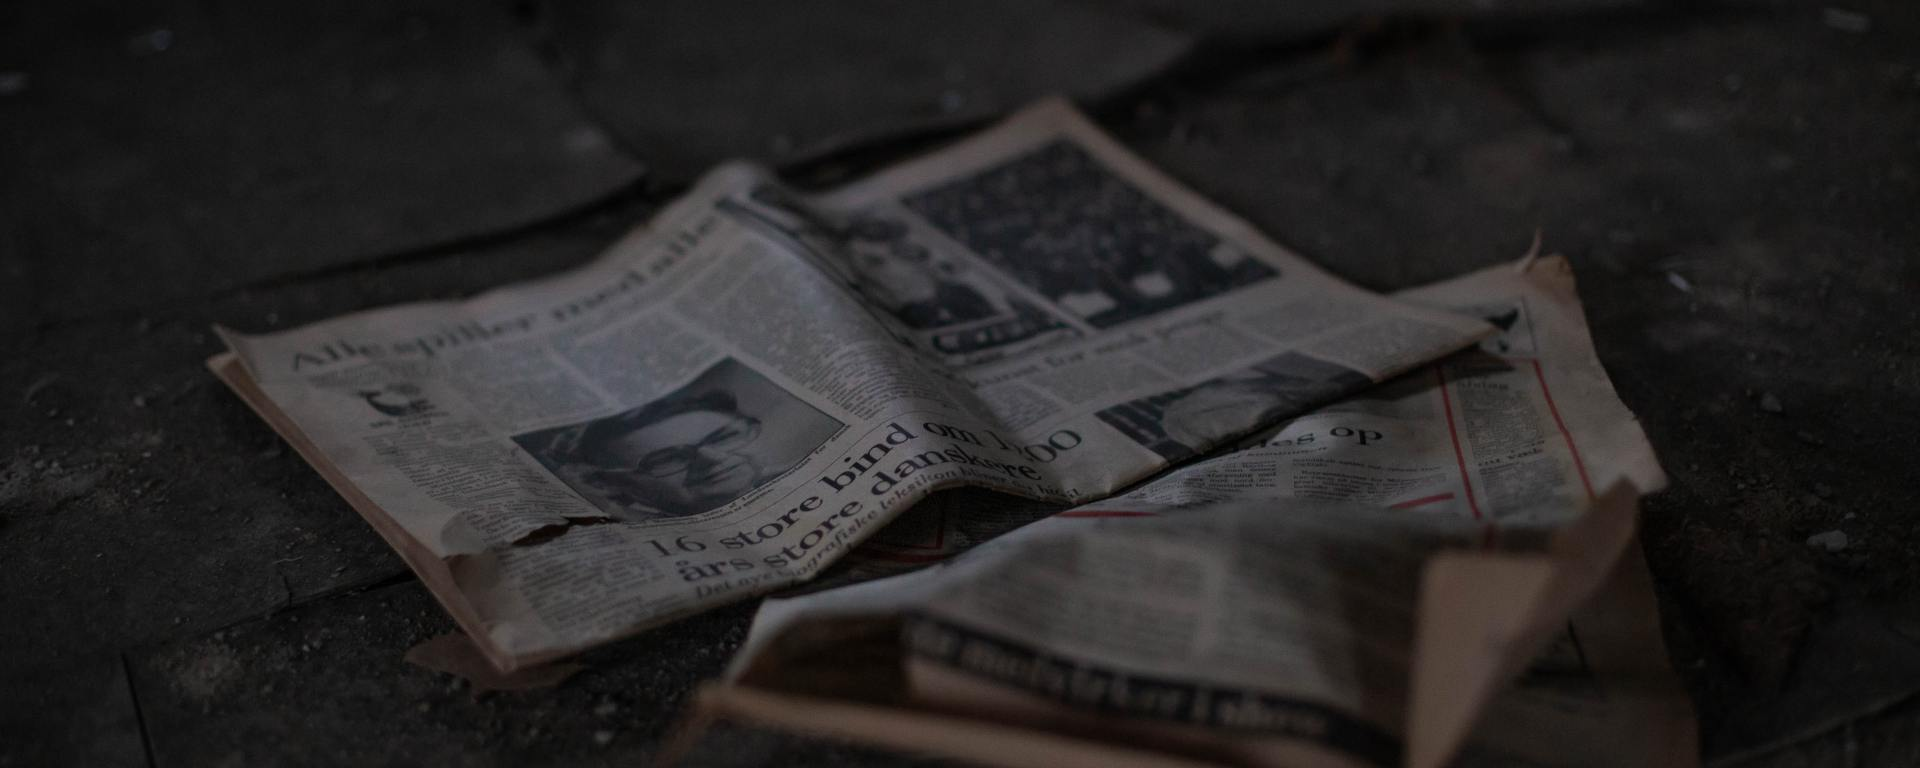 An image of a crumpled newspaper on the ground.